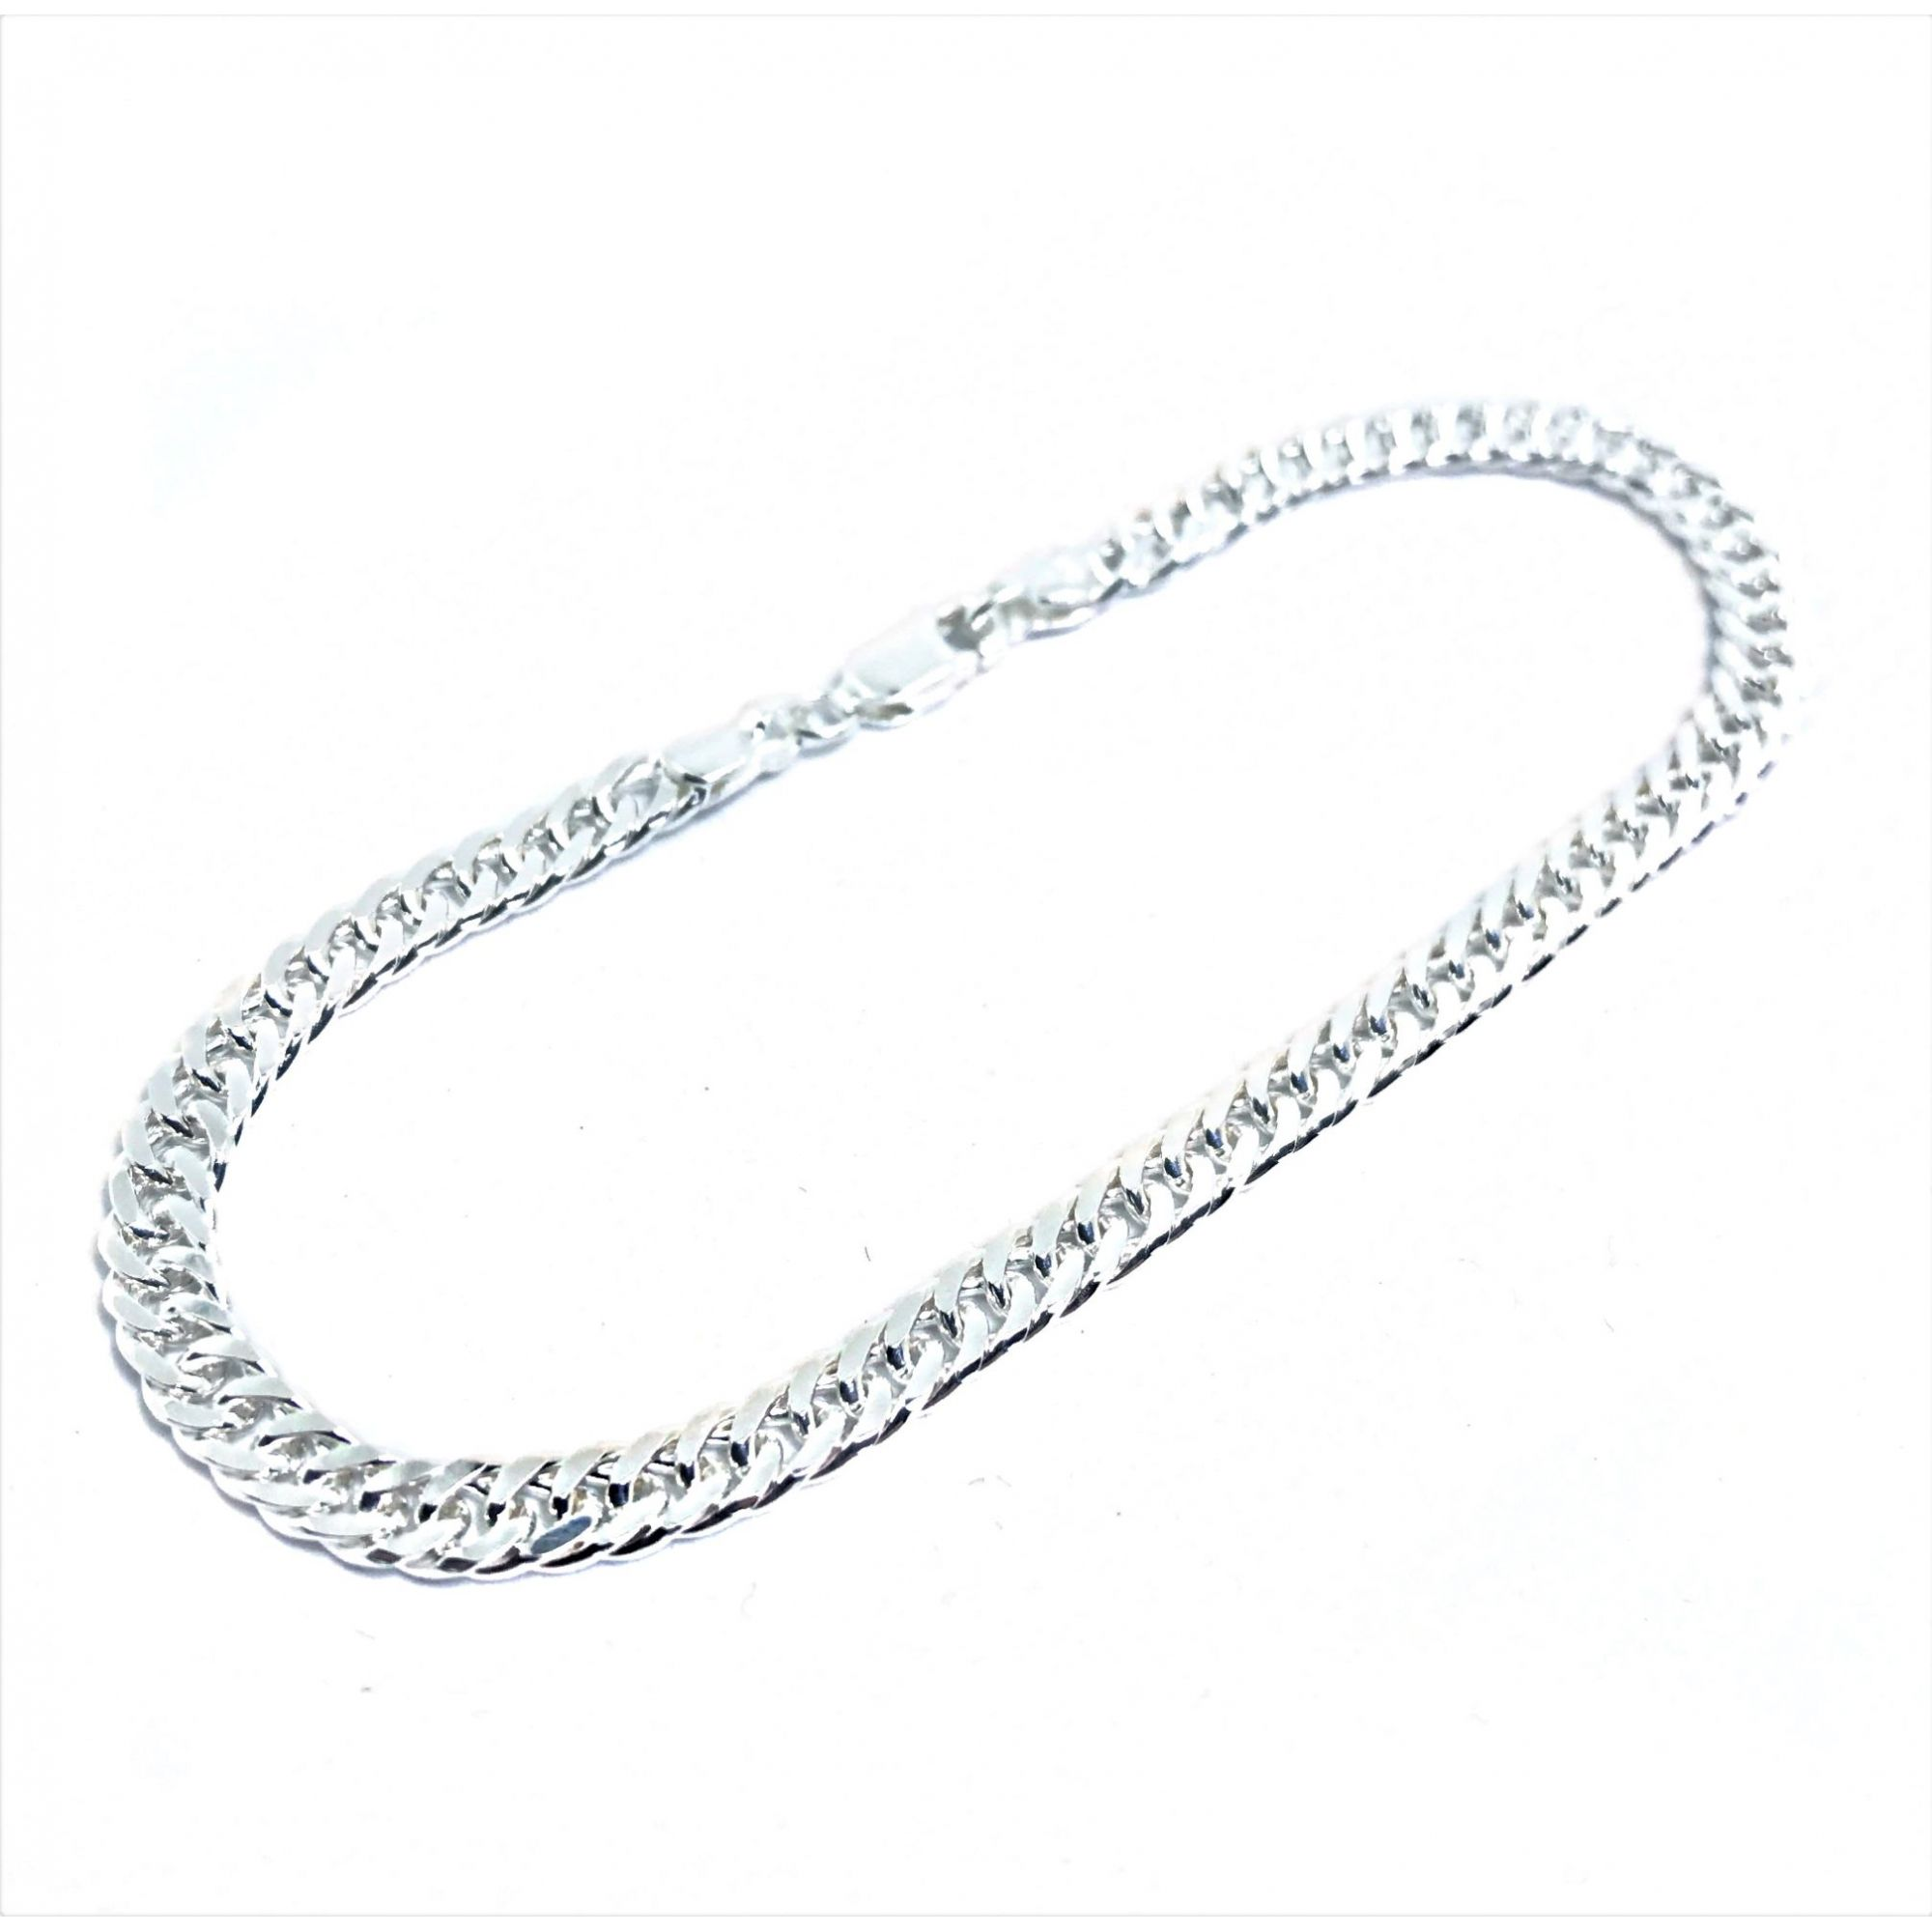 Pulseira Double Grumet 4mm 8g (Prata 925 Italiana)